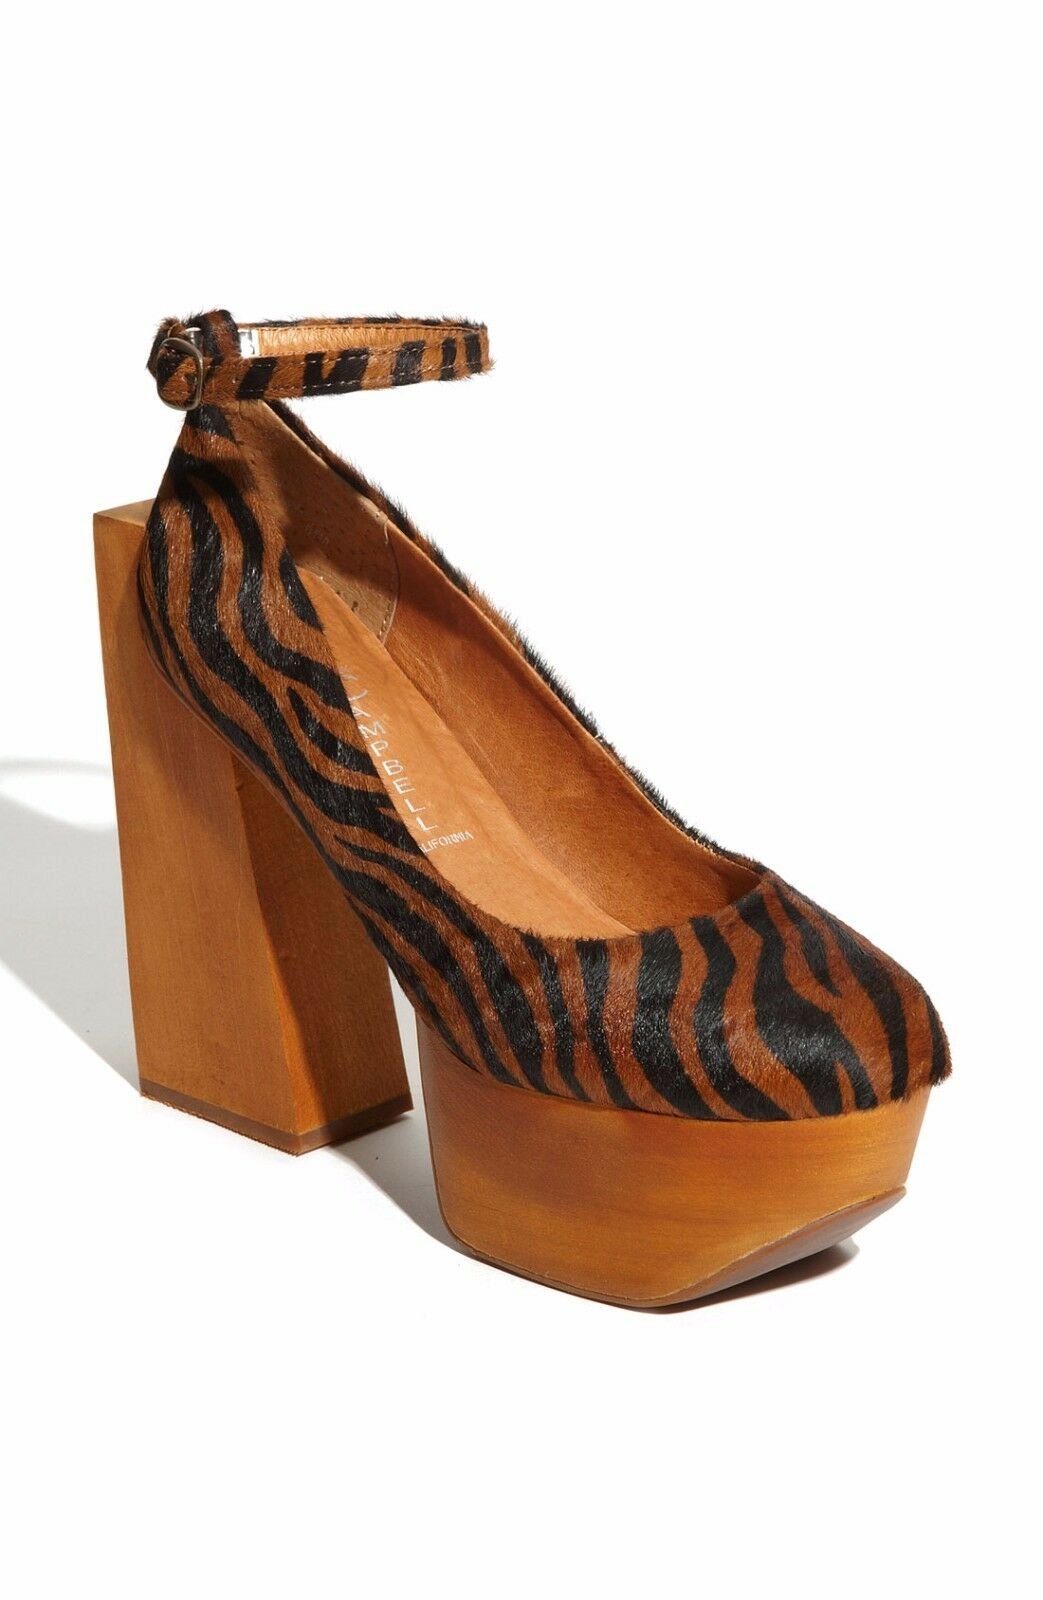 Jeffrey Campbell 'Safety' Animal Print Wooden Block Calf Hair Pumps Sz 6.5